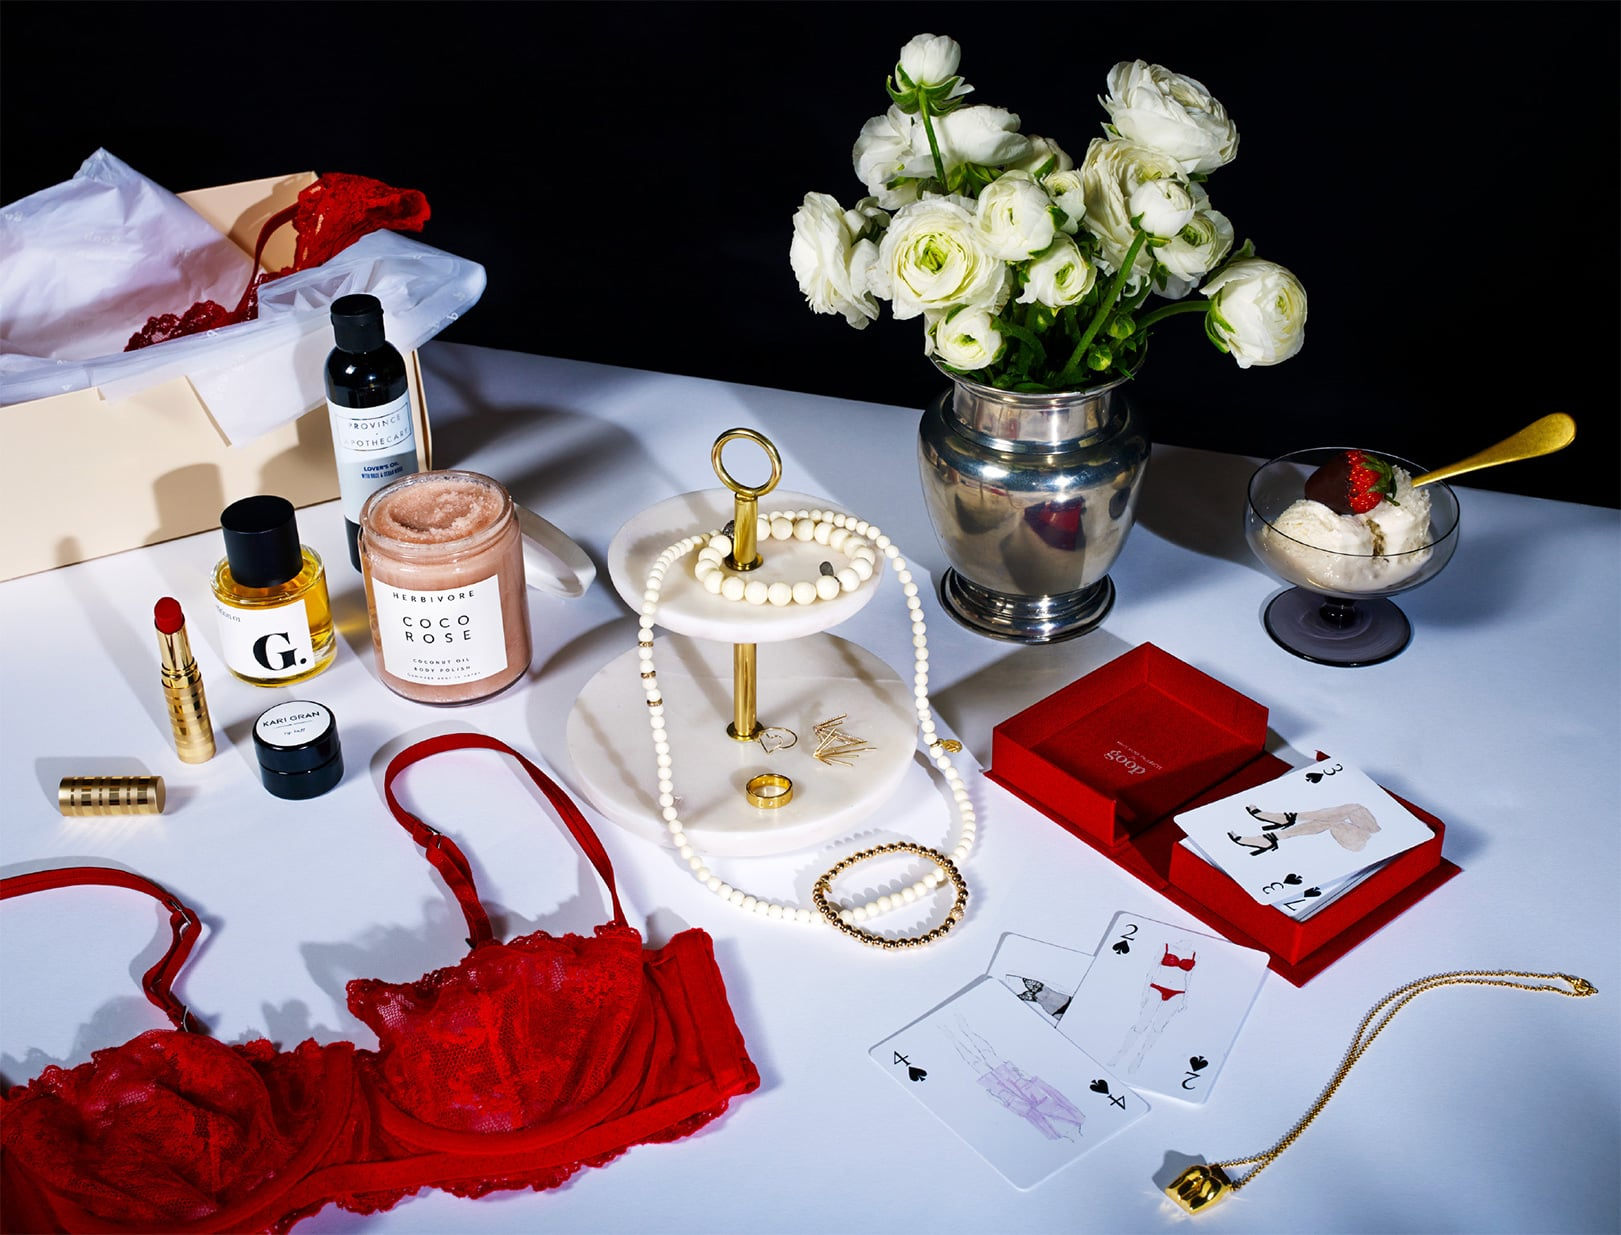 The Women S Valentine S Day Gift Guide Goop